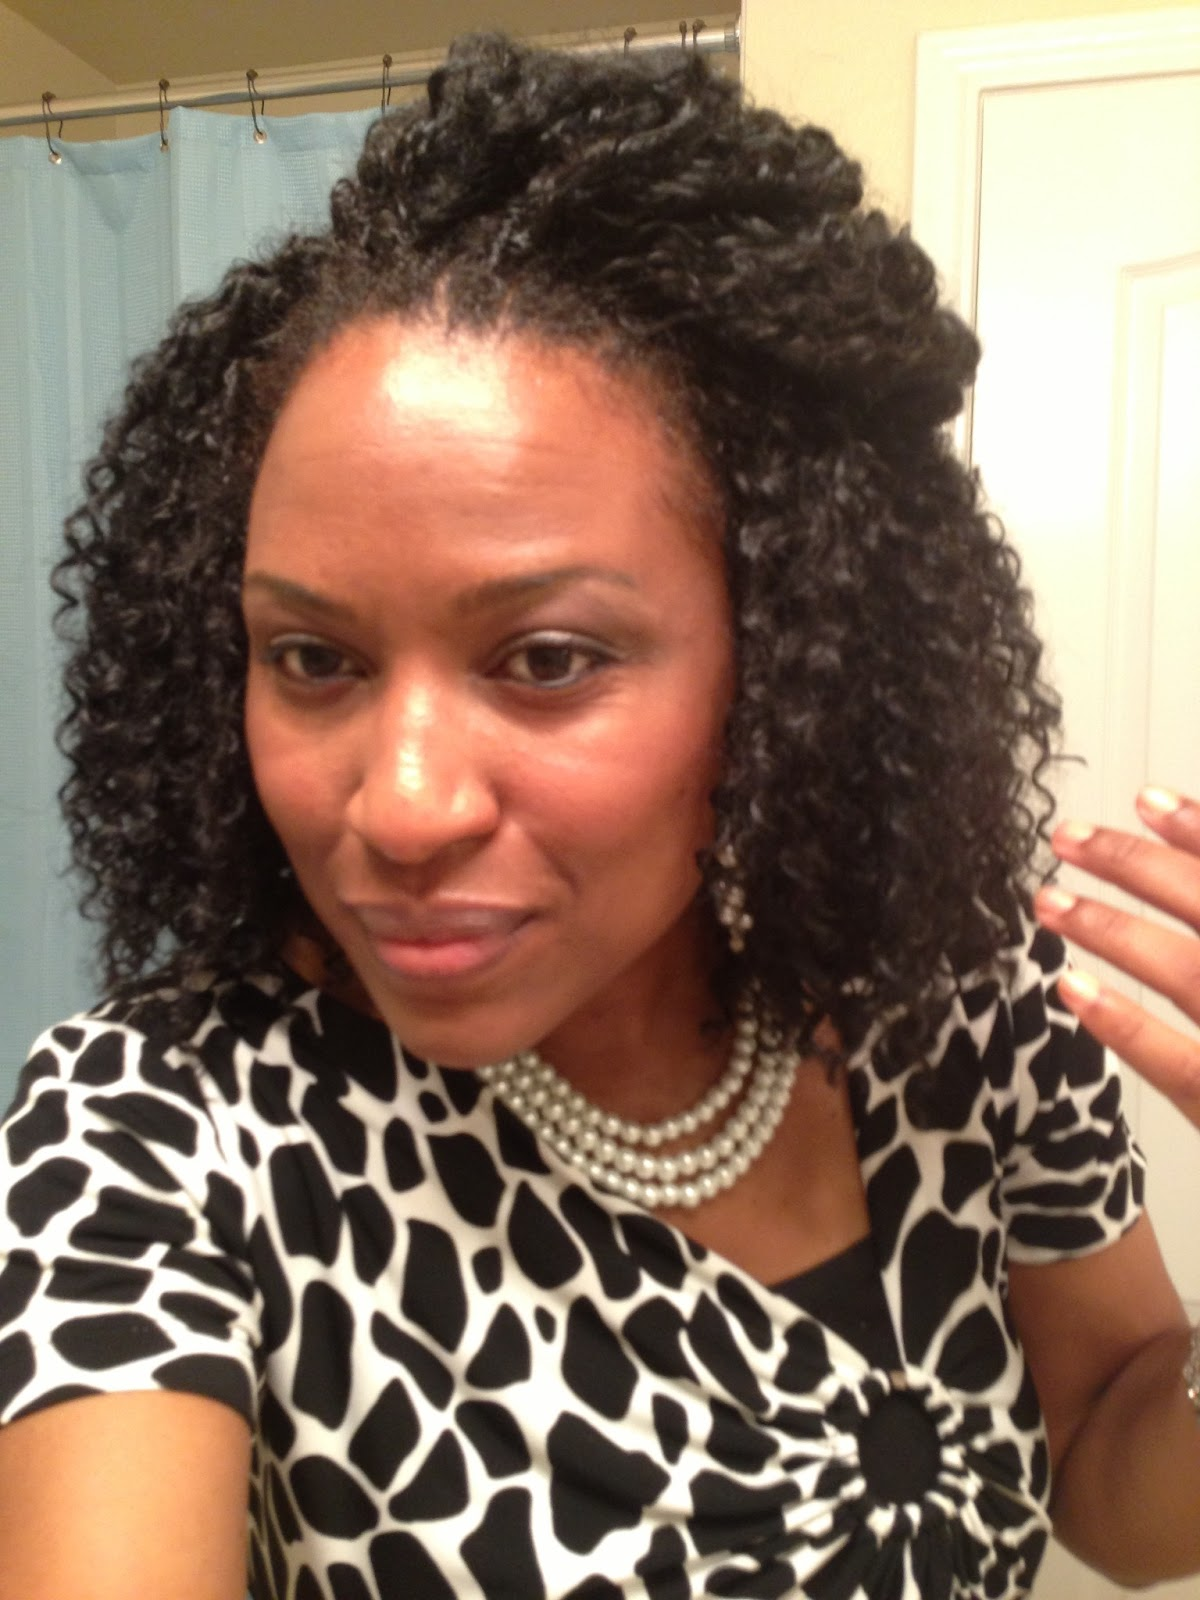 Crochet Braids Greensboro Nc : ... crochet braids my 8 week update click for details crochet braiding